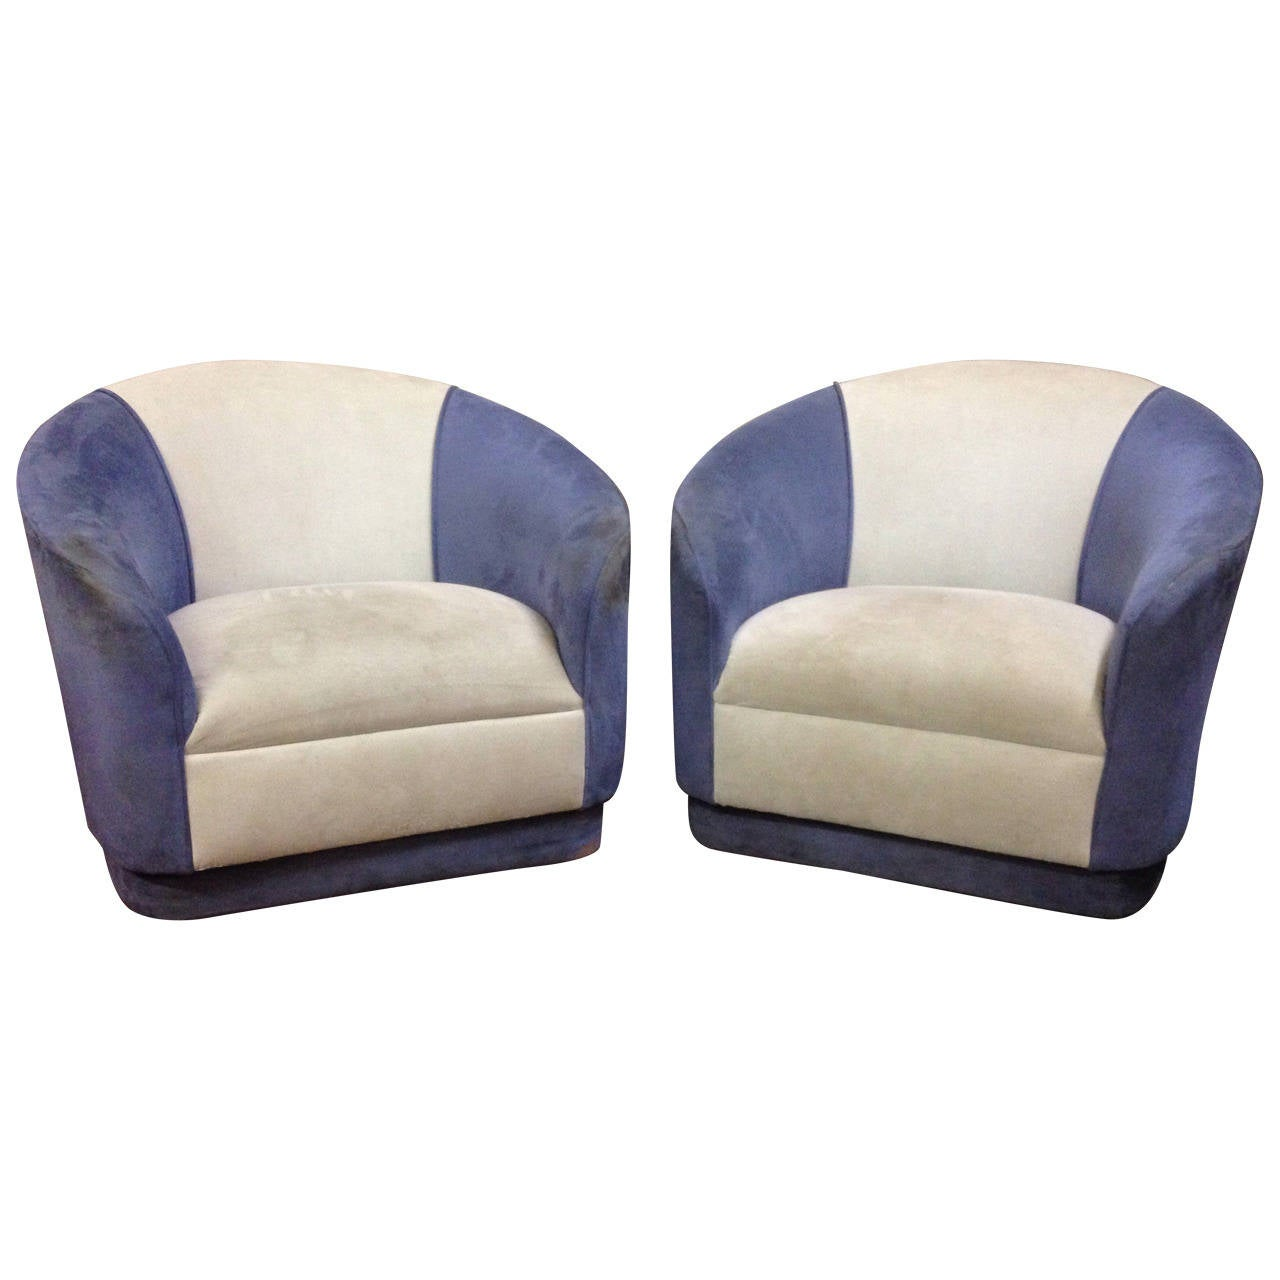 Pair of Swivel Barrel Chairs For Sale at 1stdibs